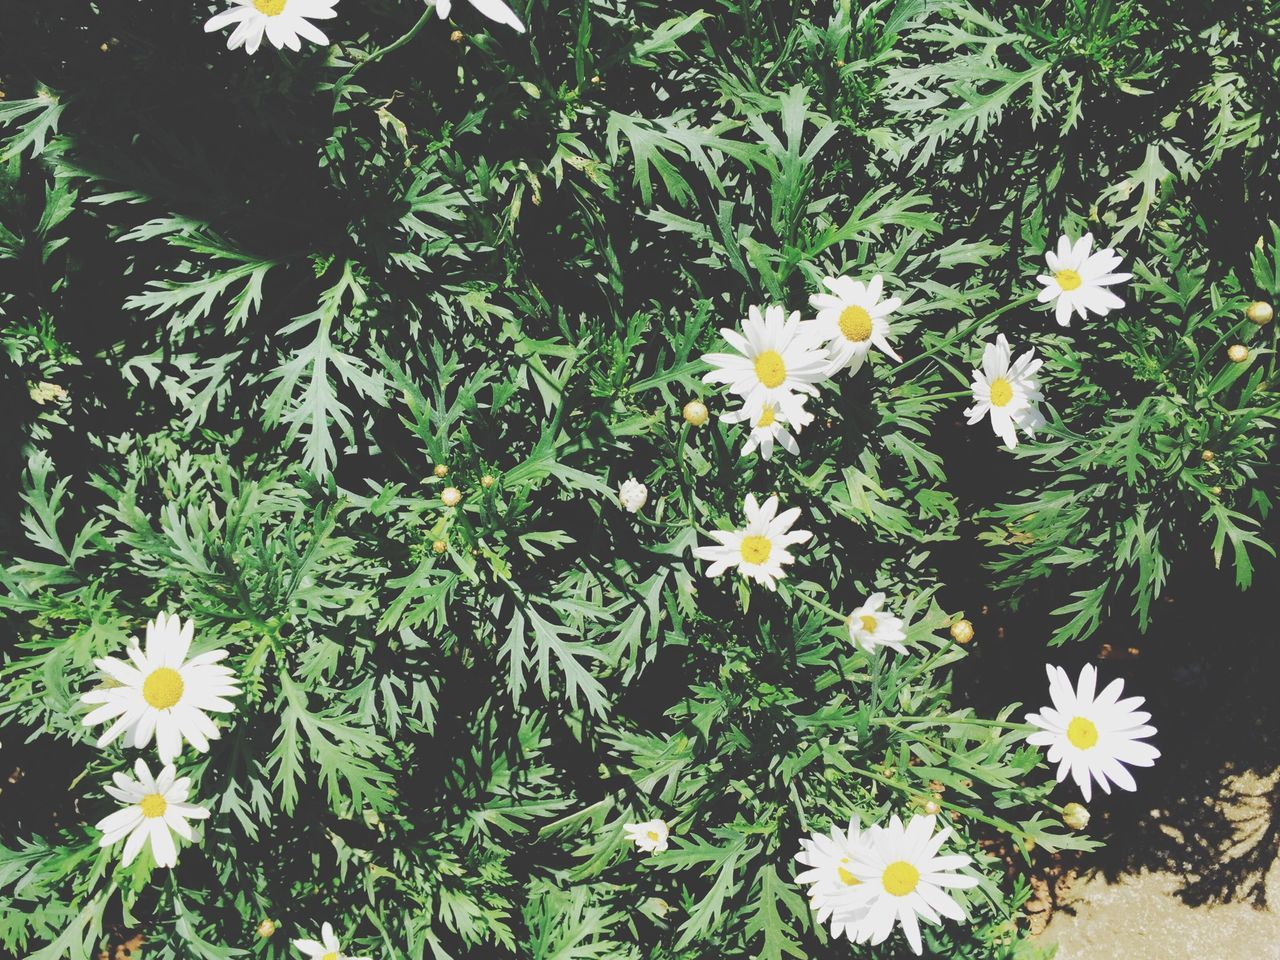 Daisy Plant In Park